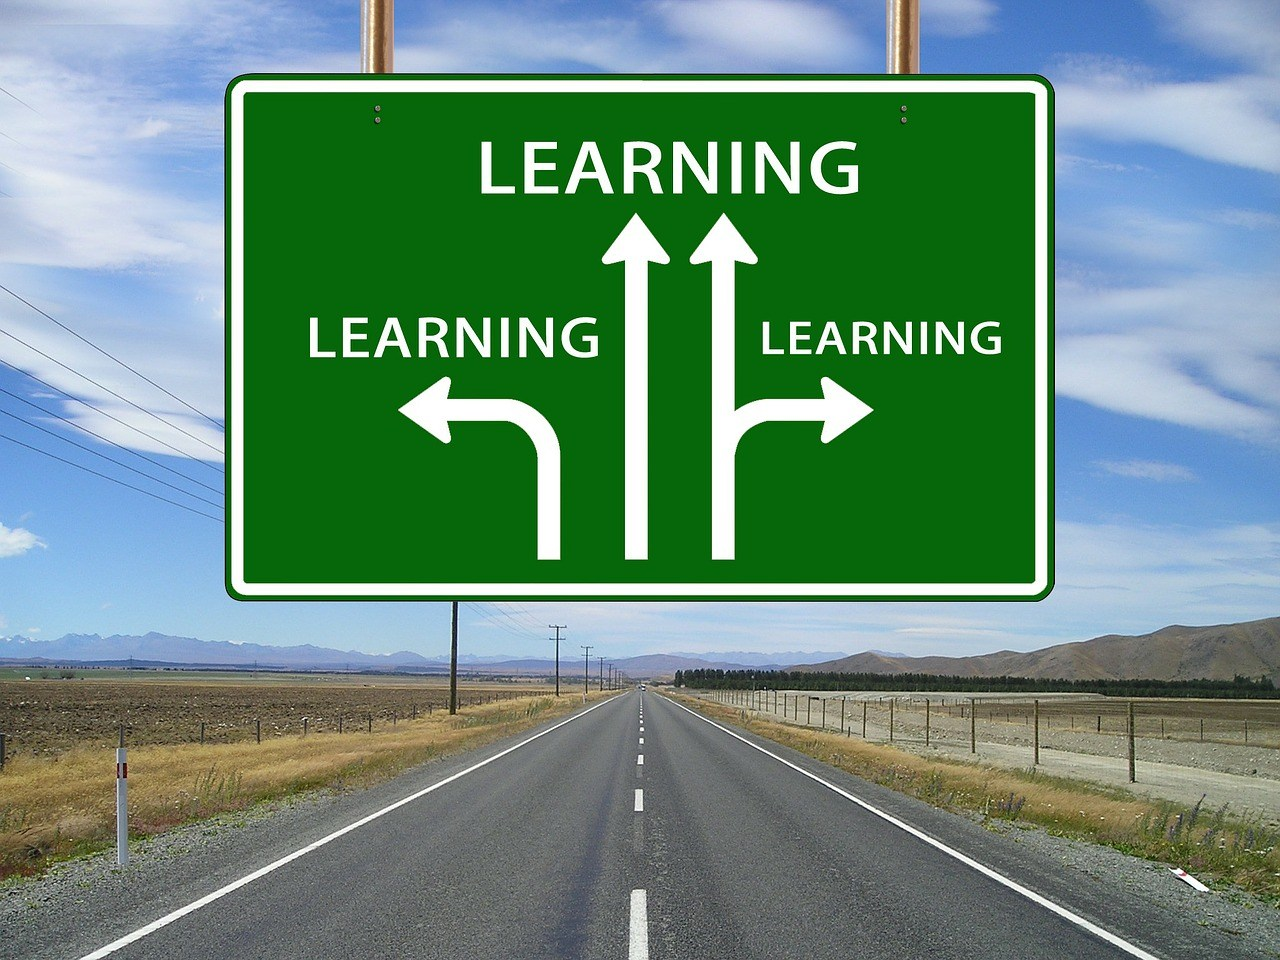 The road map to learning